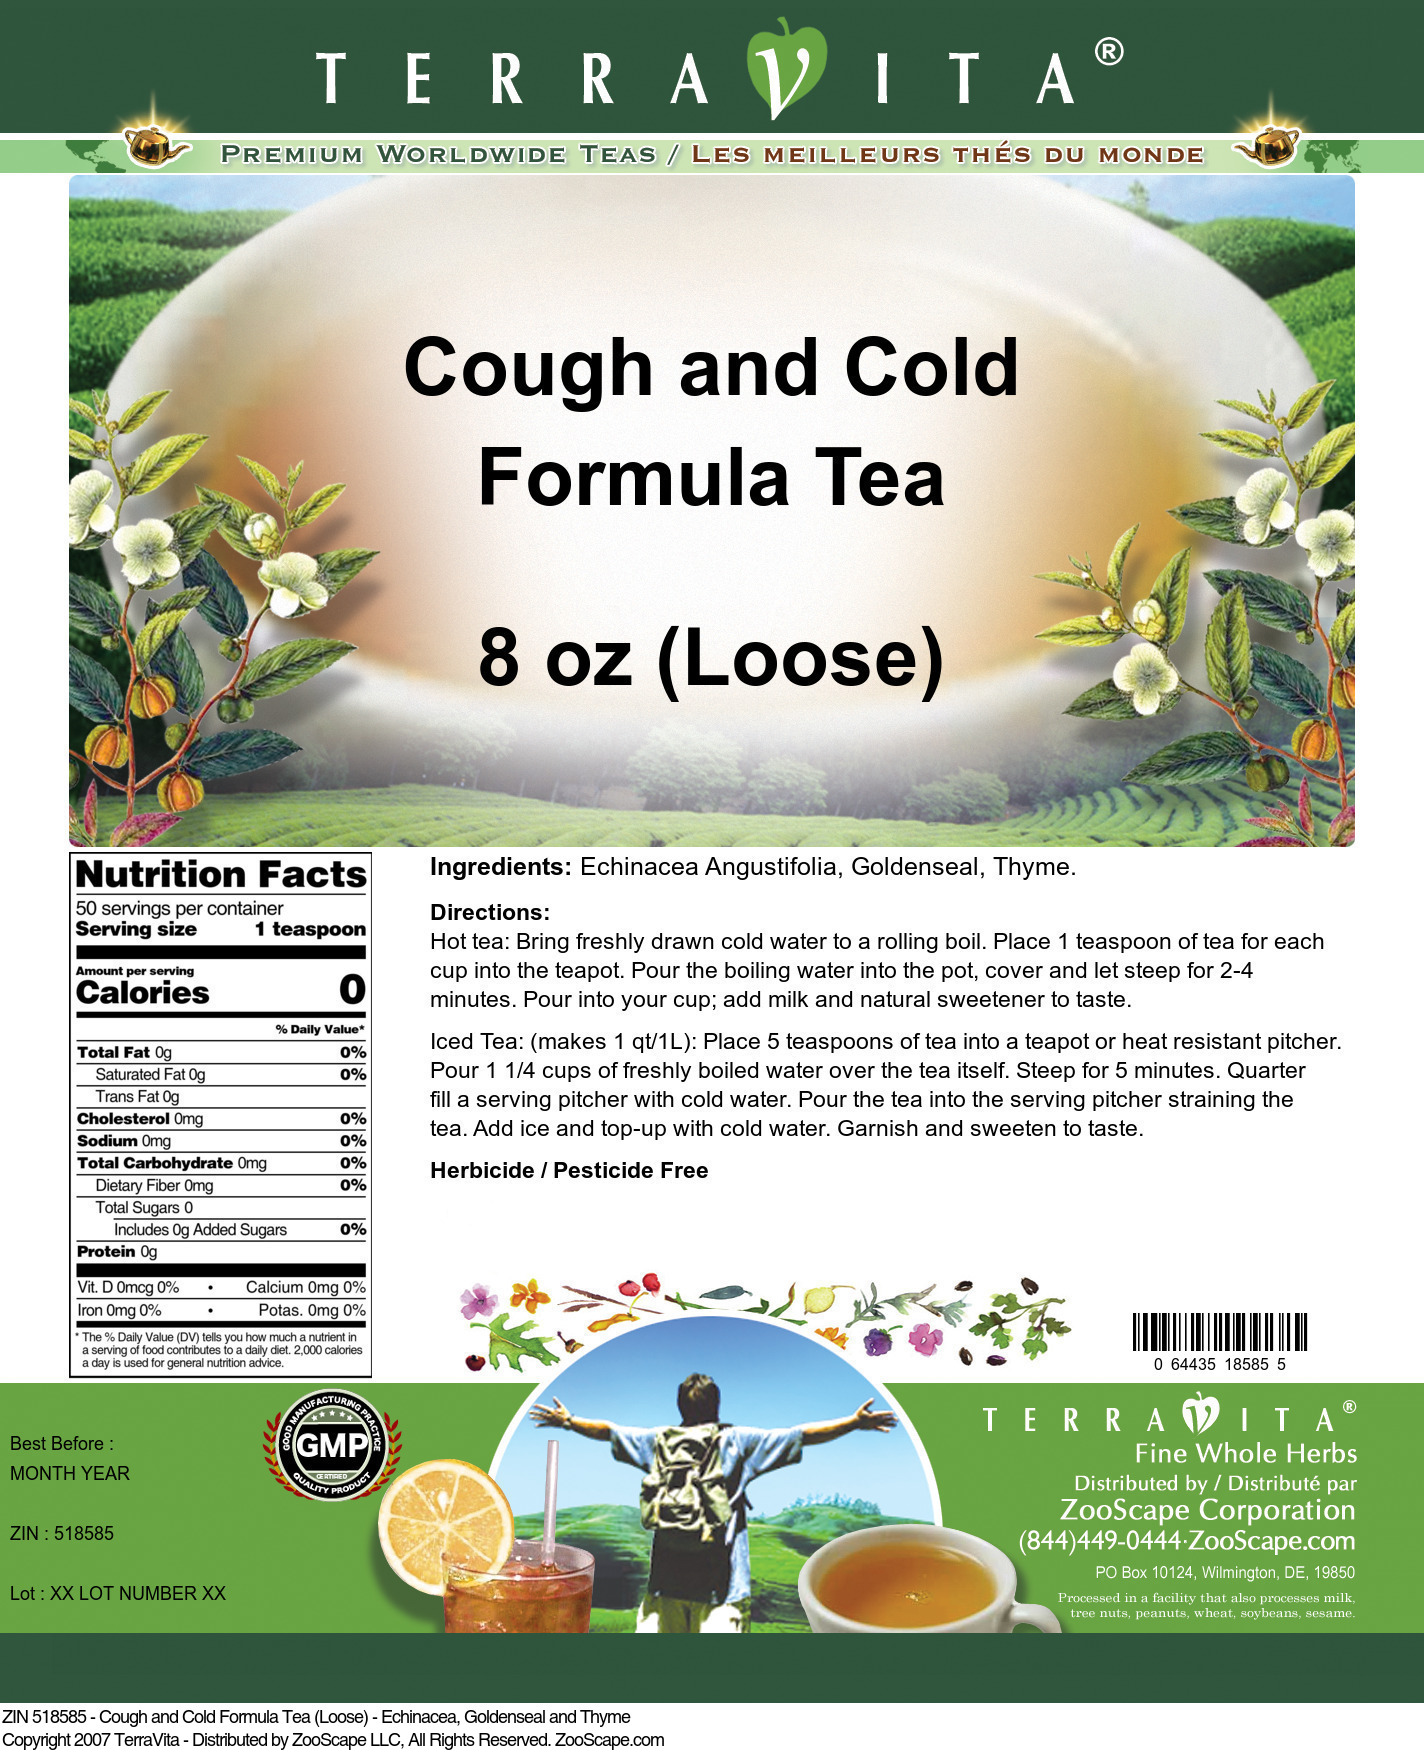 Cough and Cold Formula Tea (Loose) - Echinacea, Goldenseal and Thyme